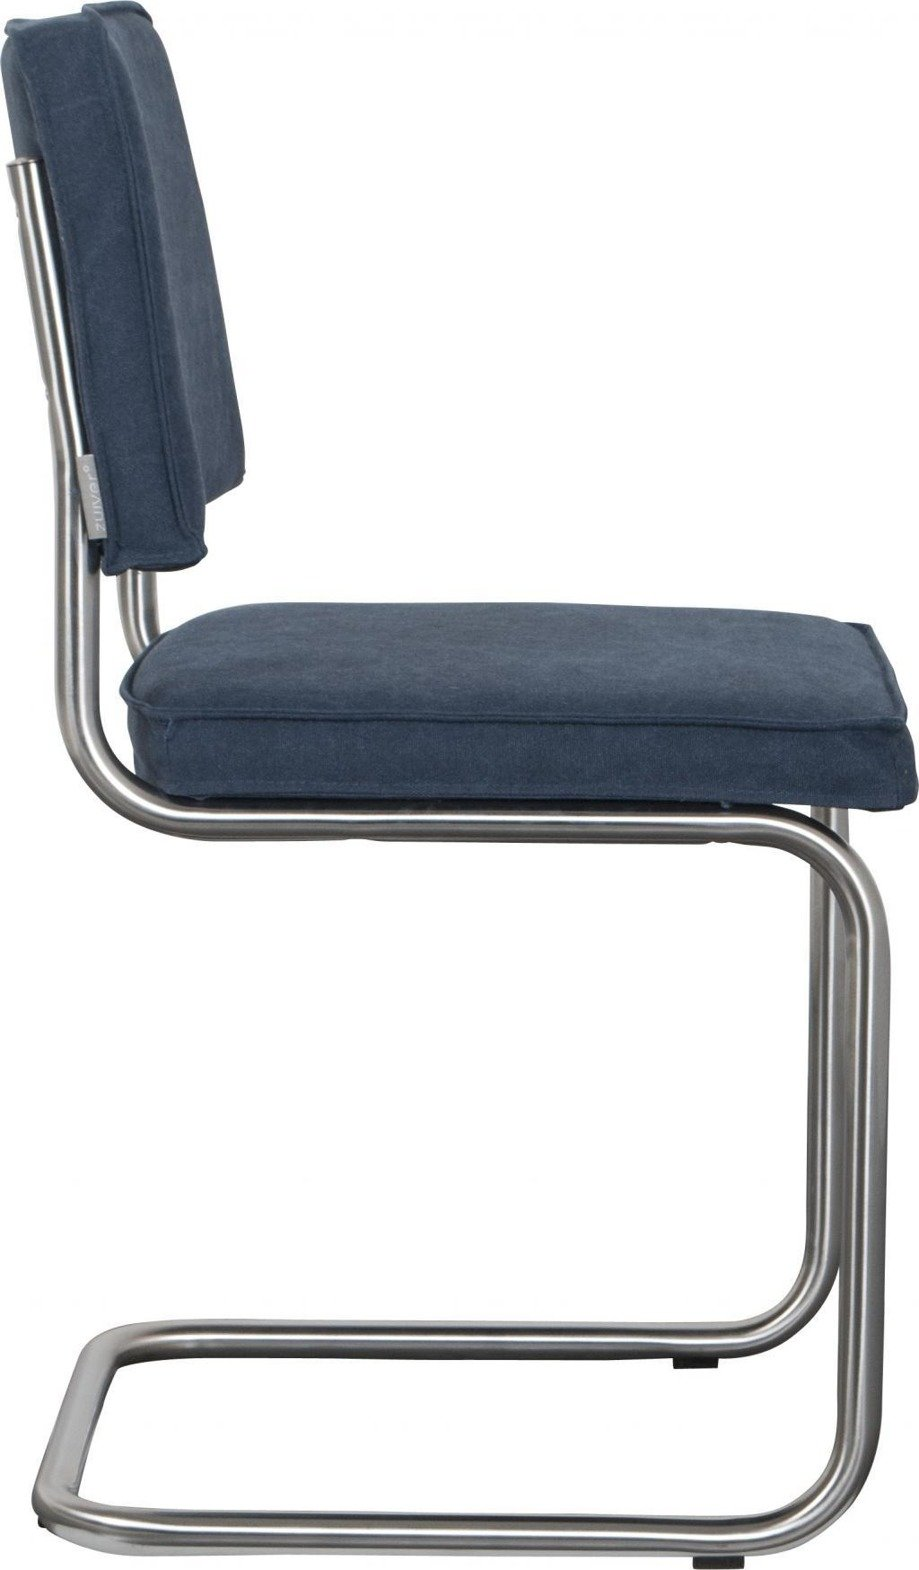 Zuiver :: Chair RIDGE BRUSHED VINTAGE blue